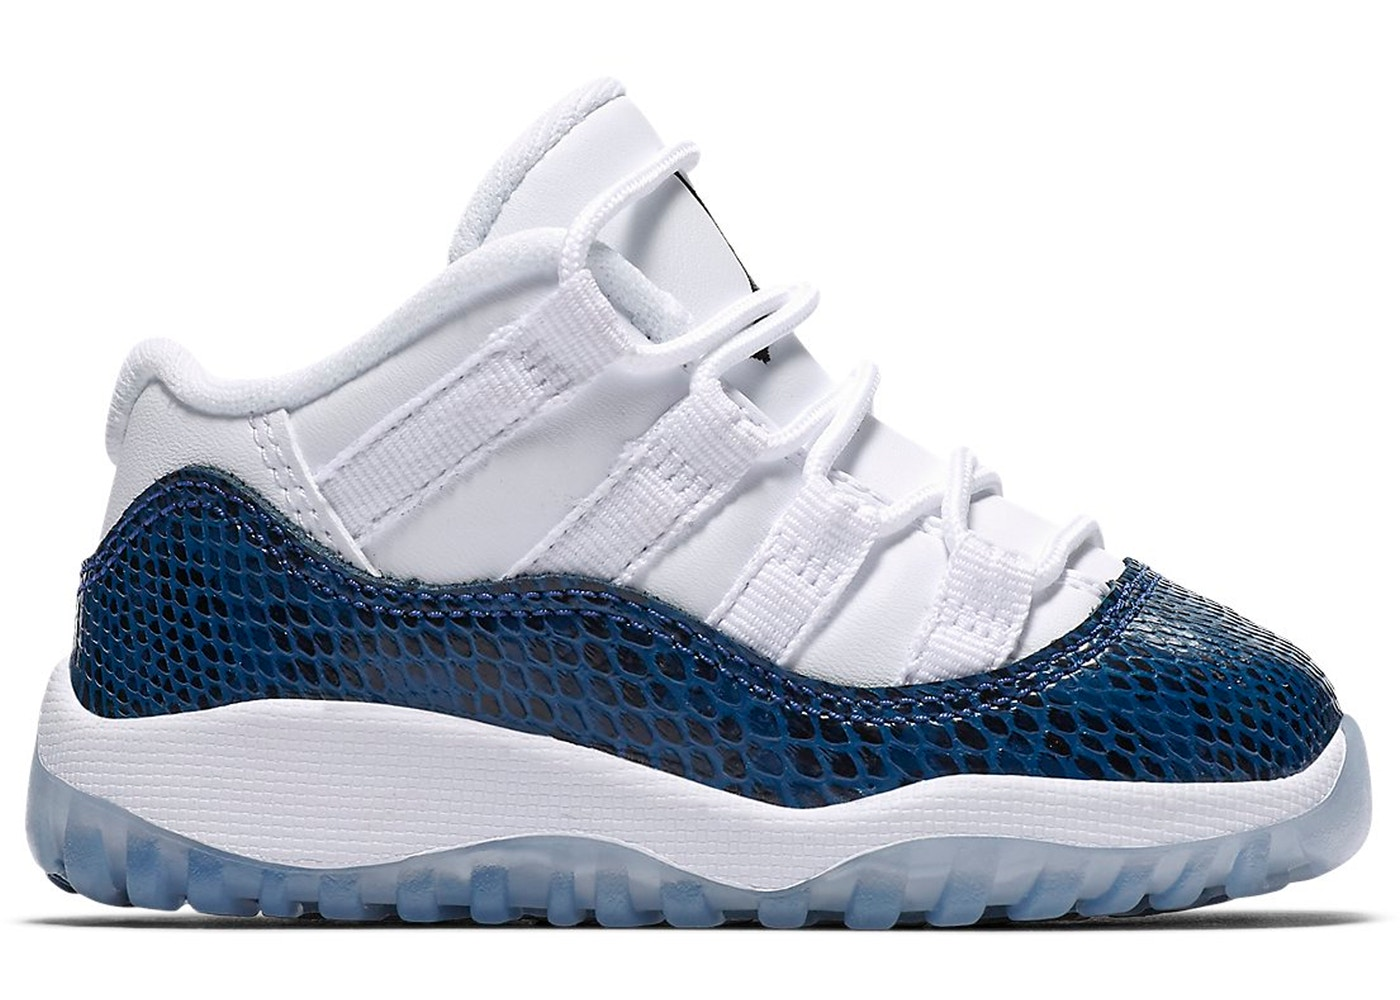 8ad342c0c5 StockX: Buy and Sell Sneakers, Streetwear, Handbags, Watches